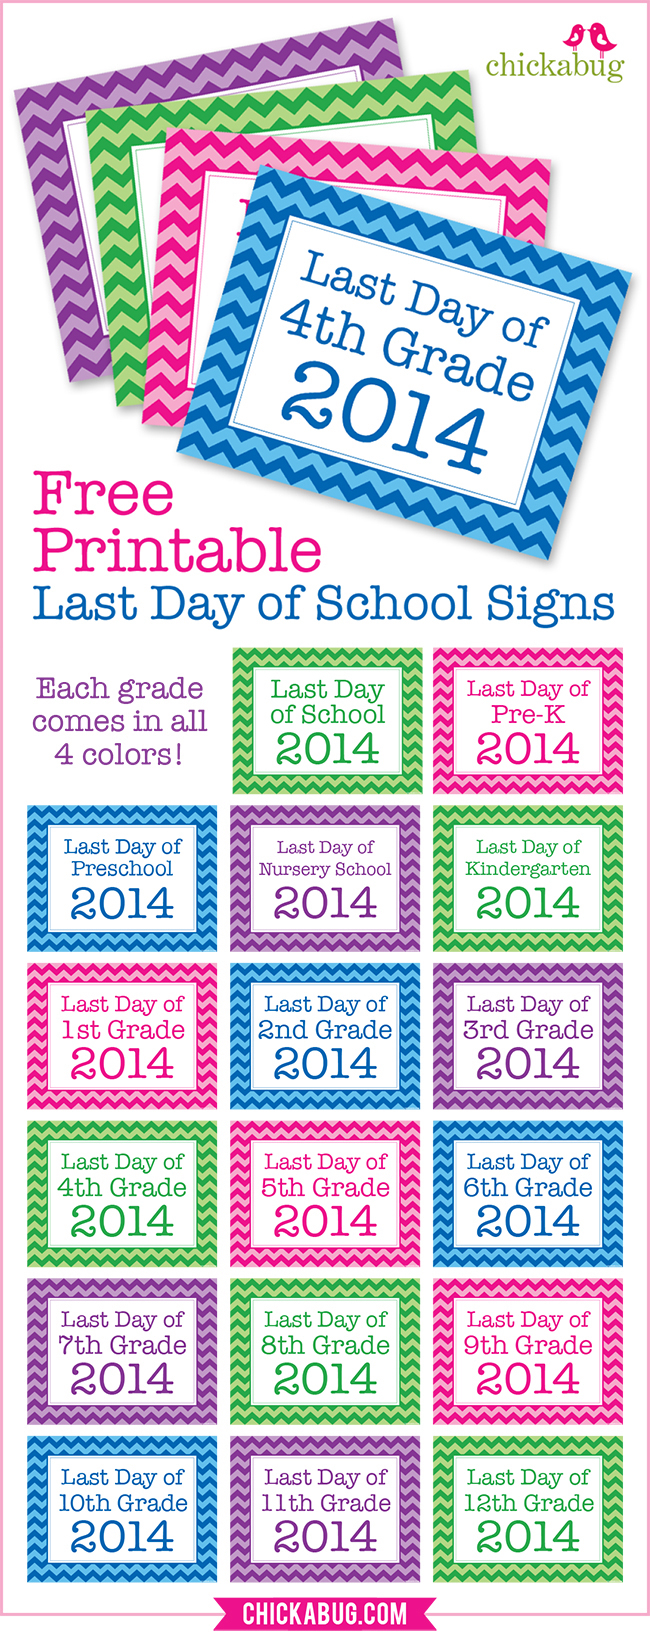 Free Printable Signs Pictures, Photos, and Images for Facebook ...